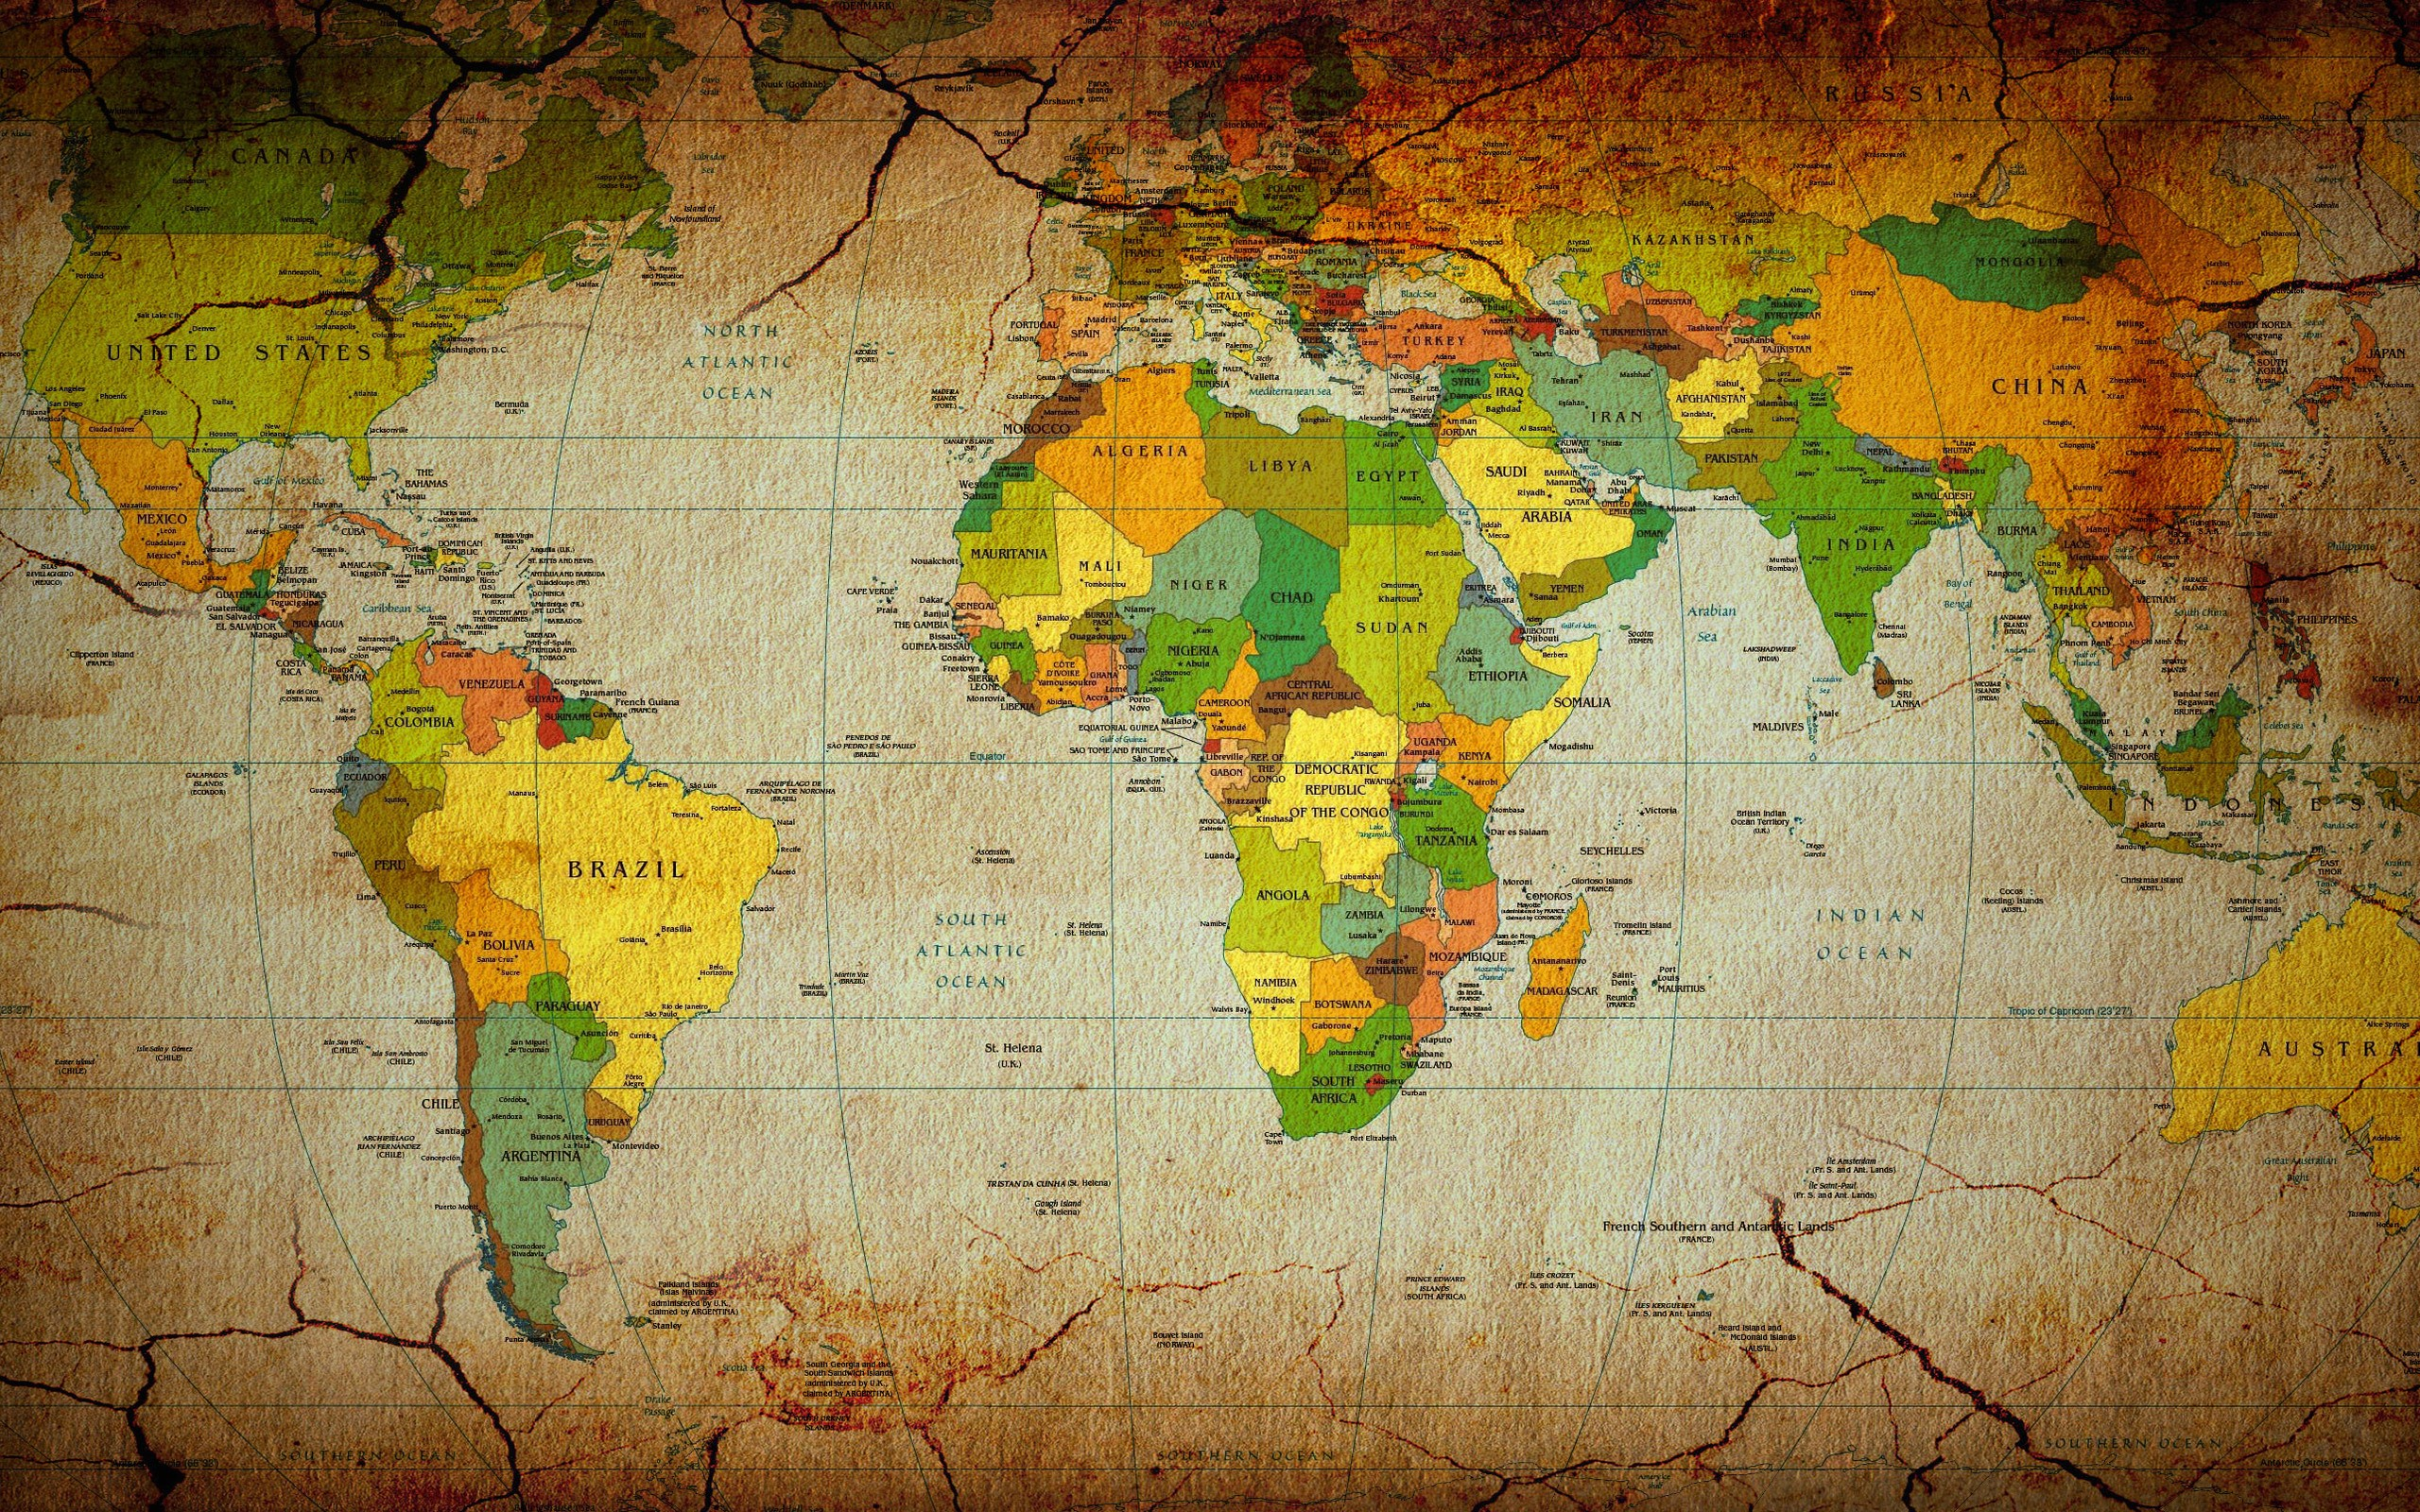 World map wallpaper 6254 2560x1600 px hdwallsource world map wallpaper 6254 gumiabroncs